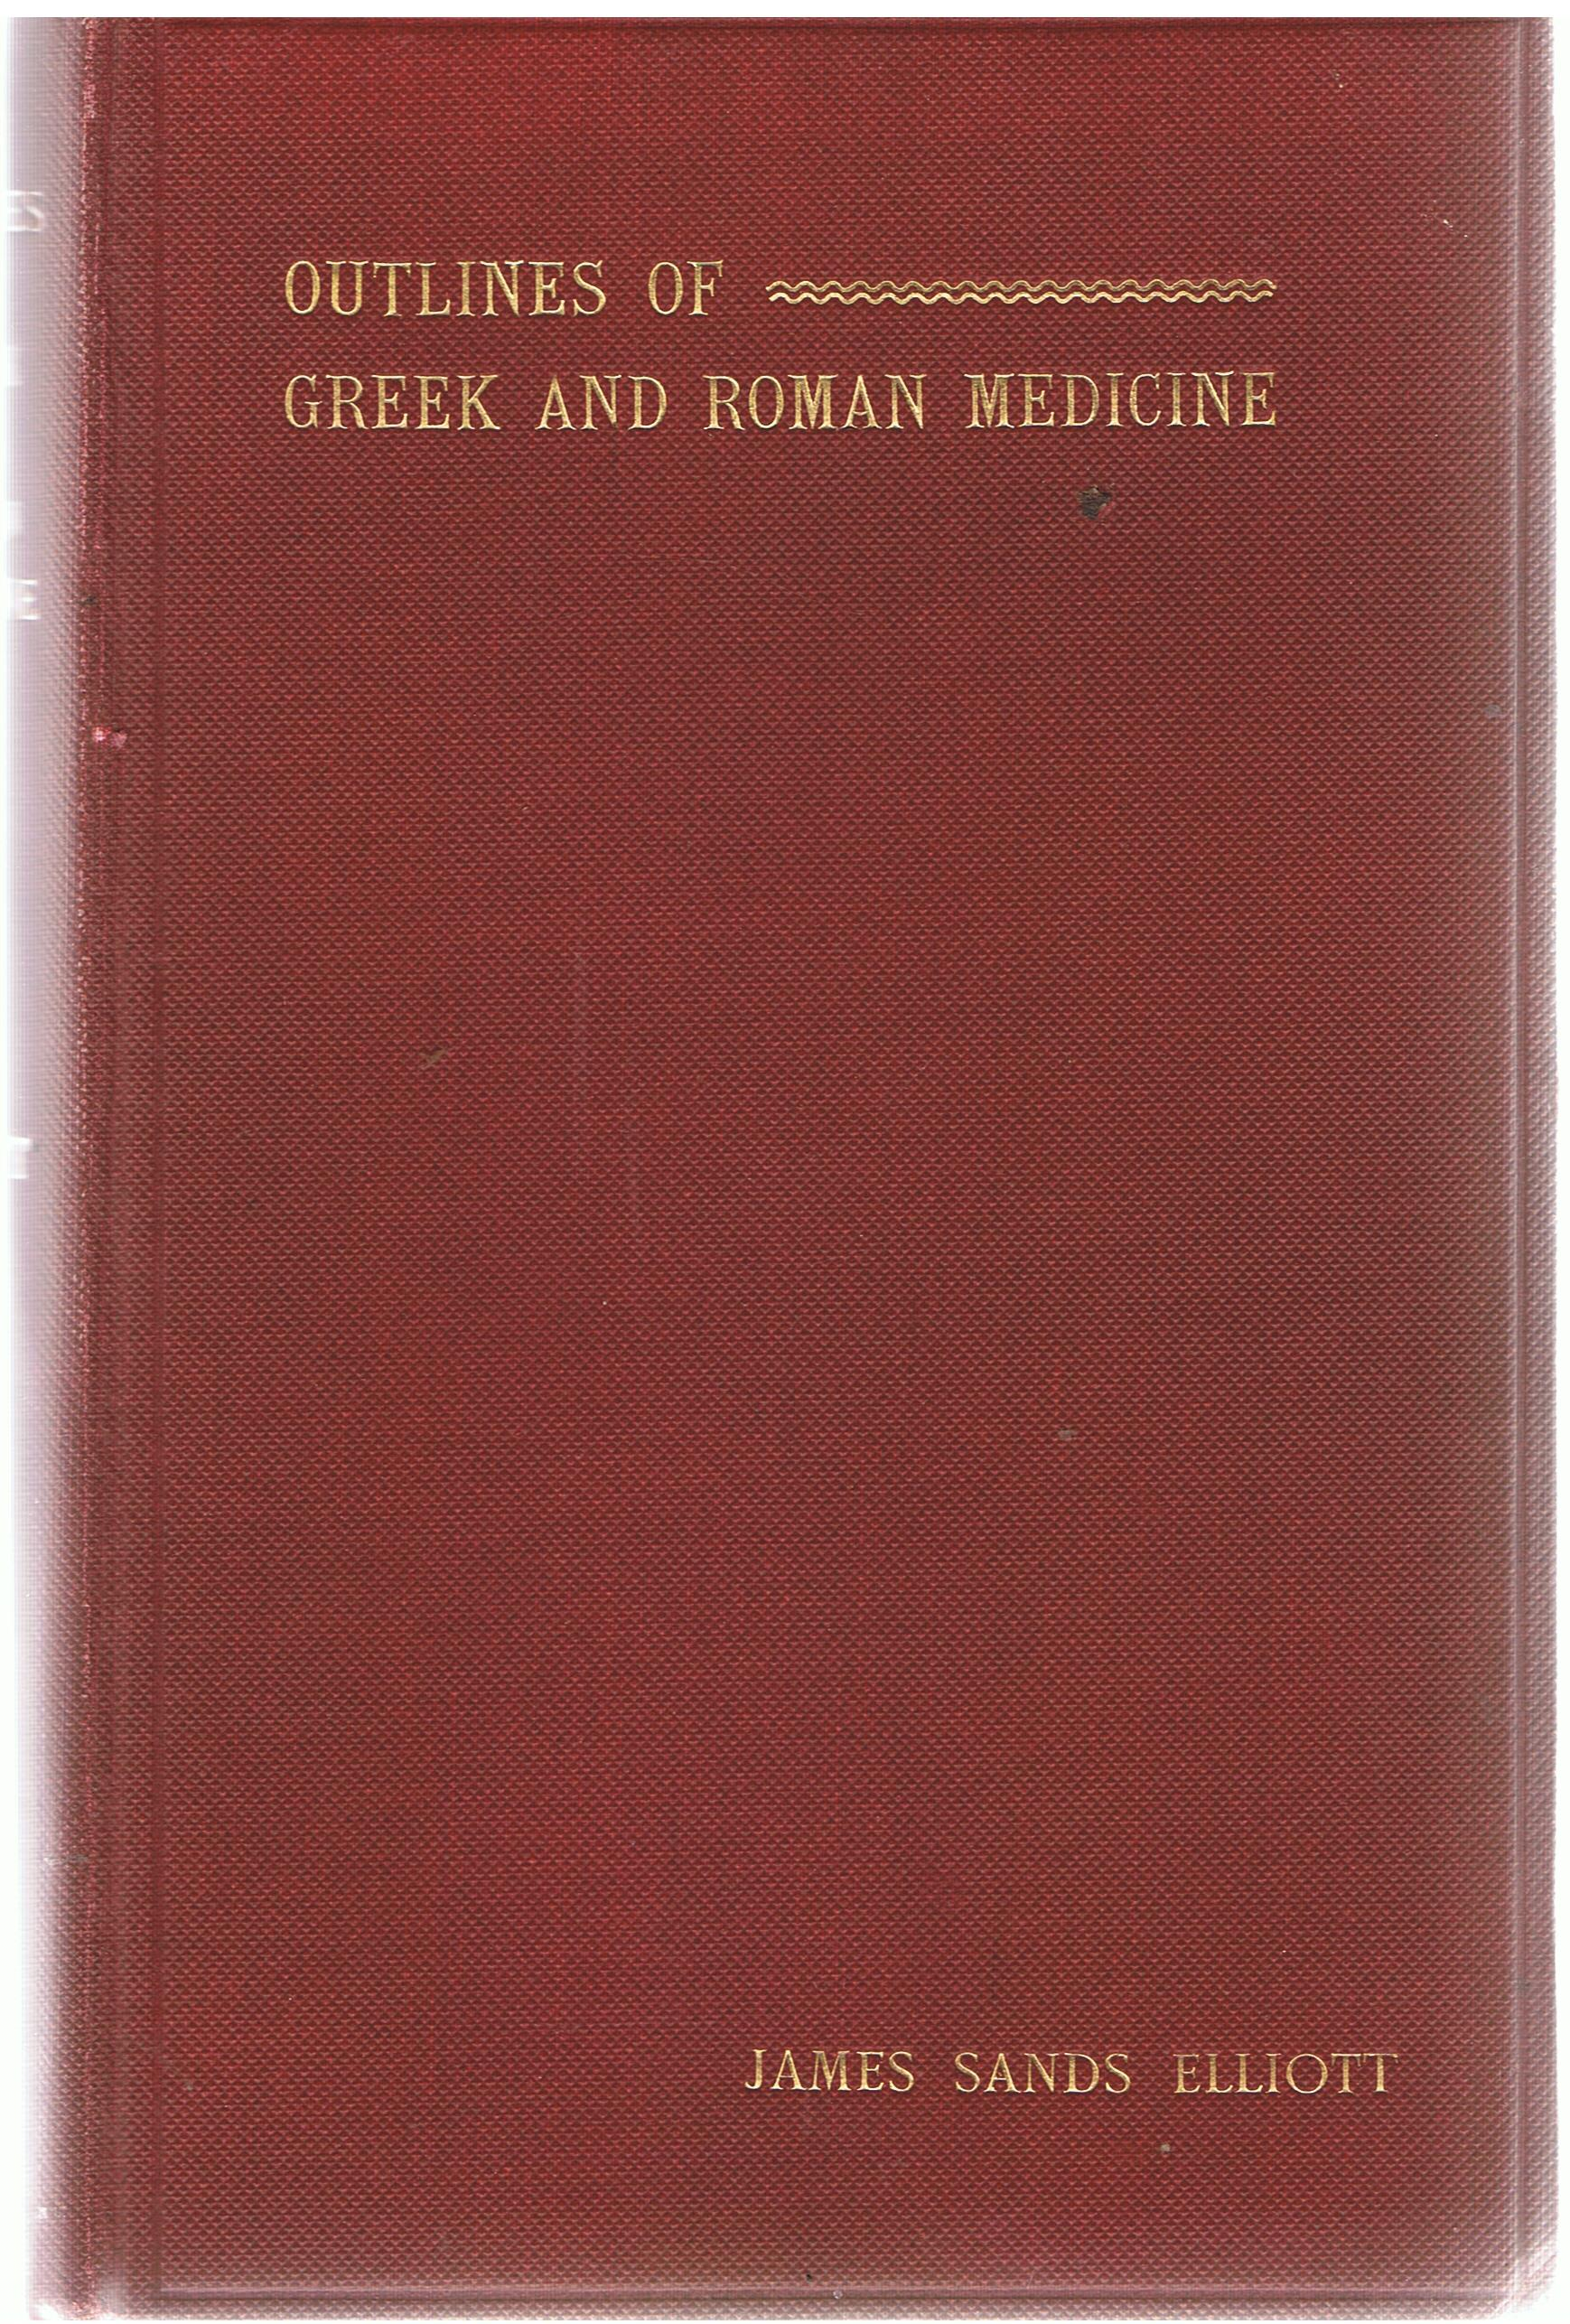 Image for Outlines of Greek and Roman Medicine.